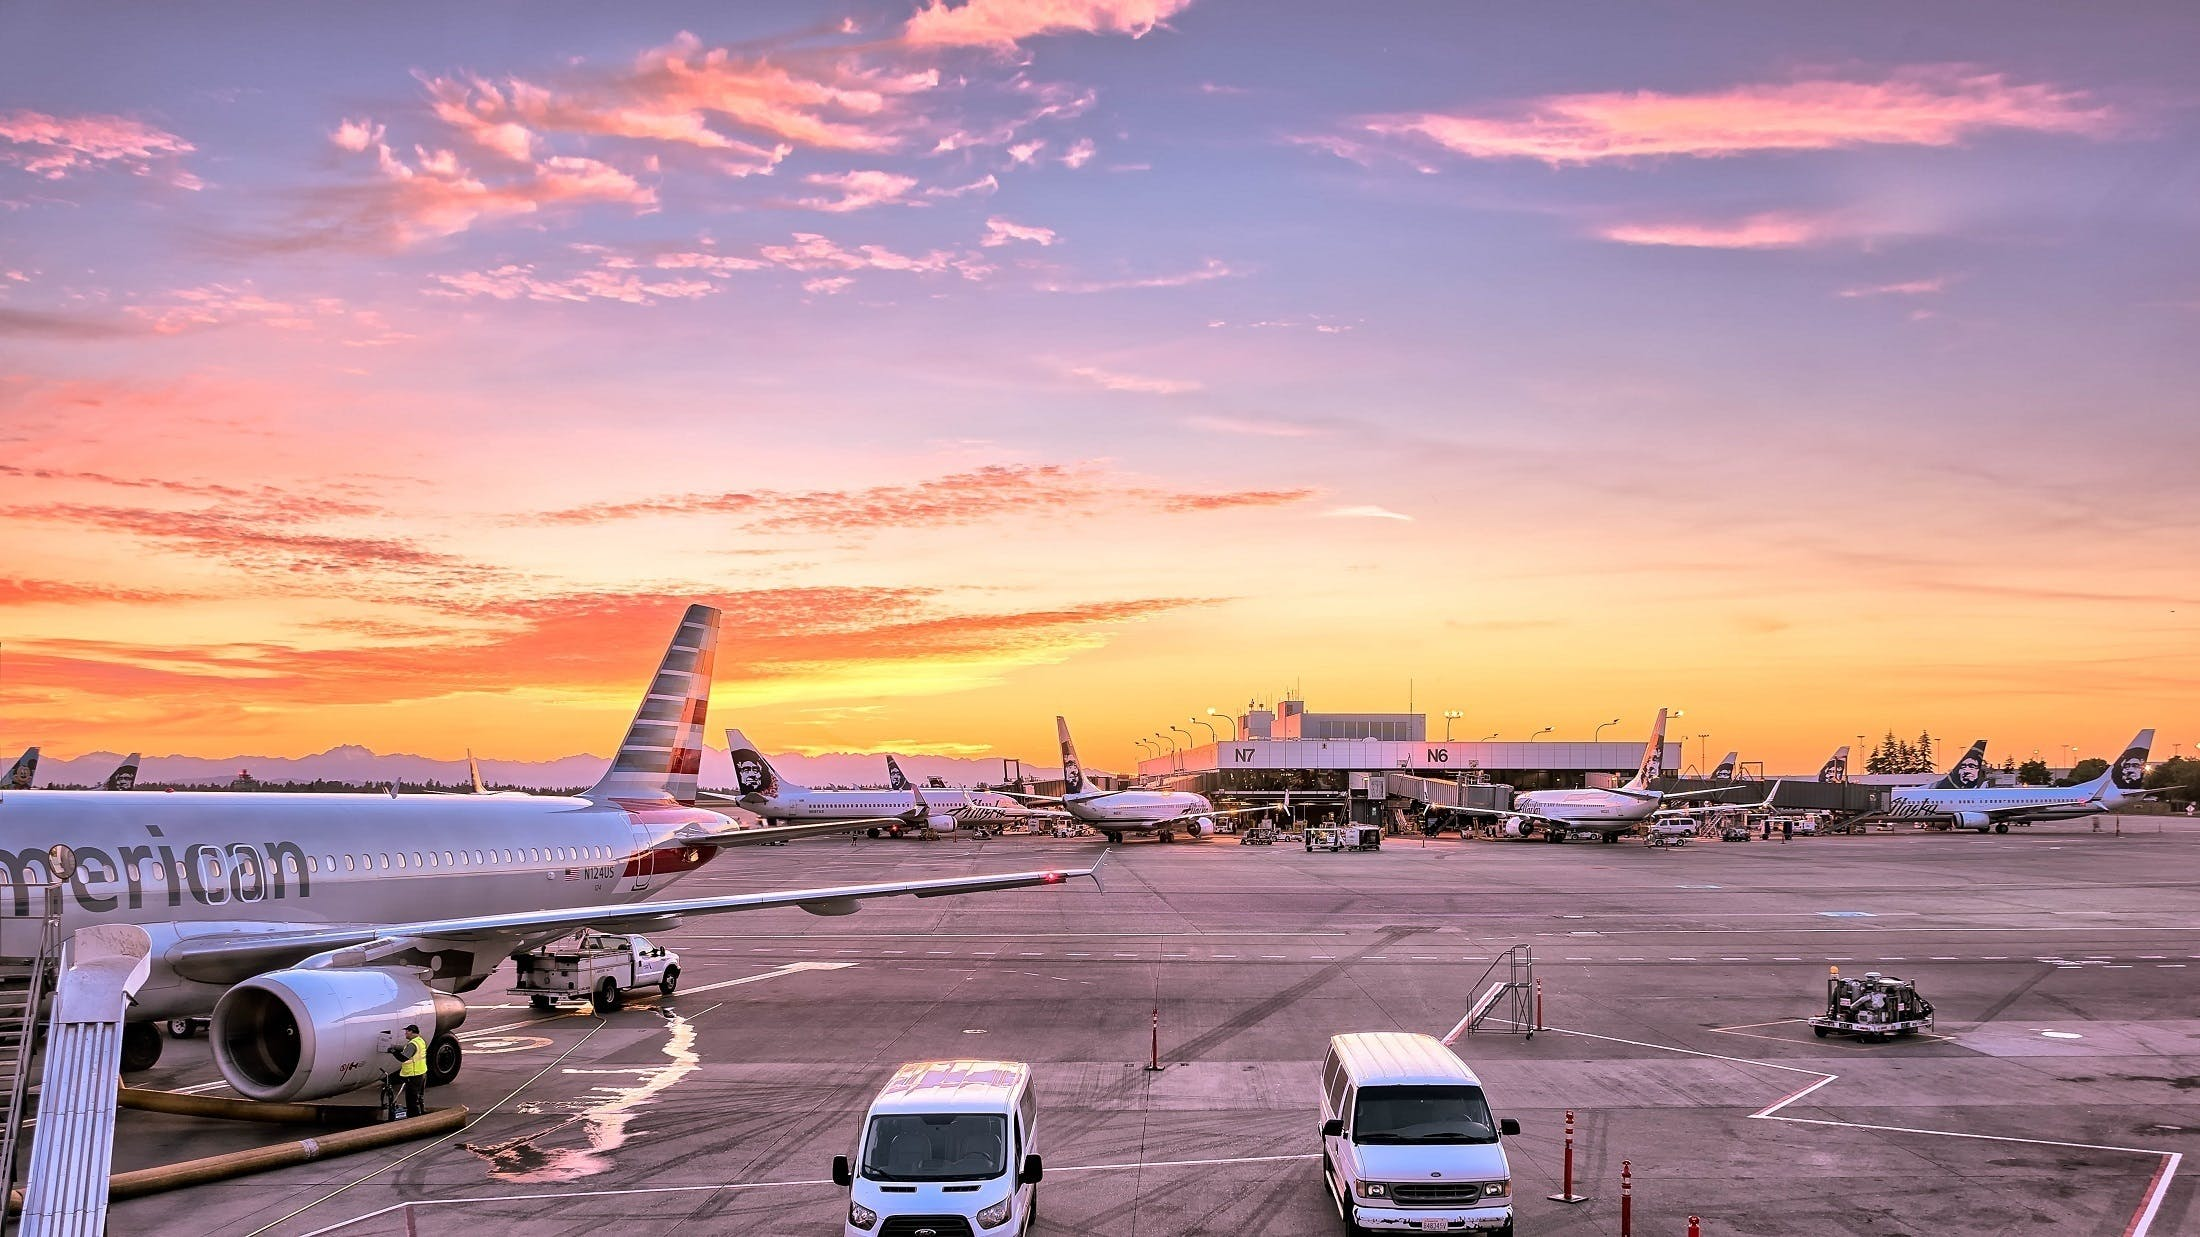 Free stock photo of dawn, sky, sunset, airport